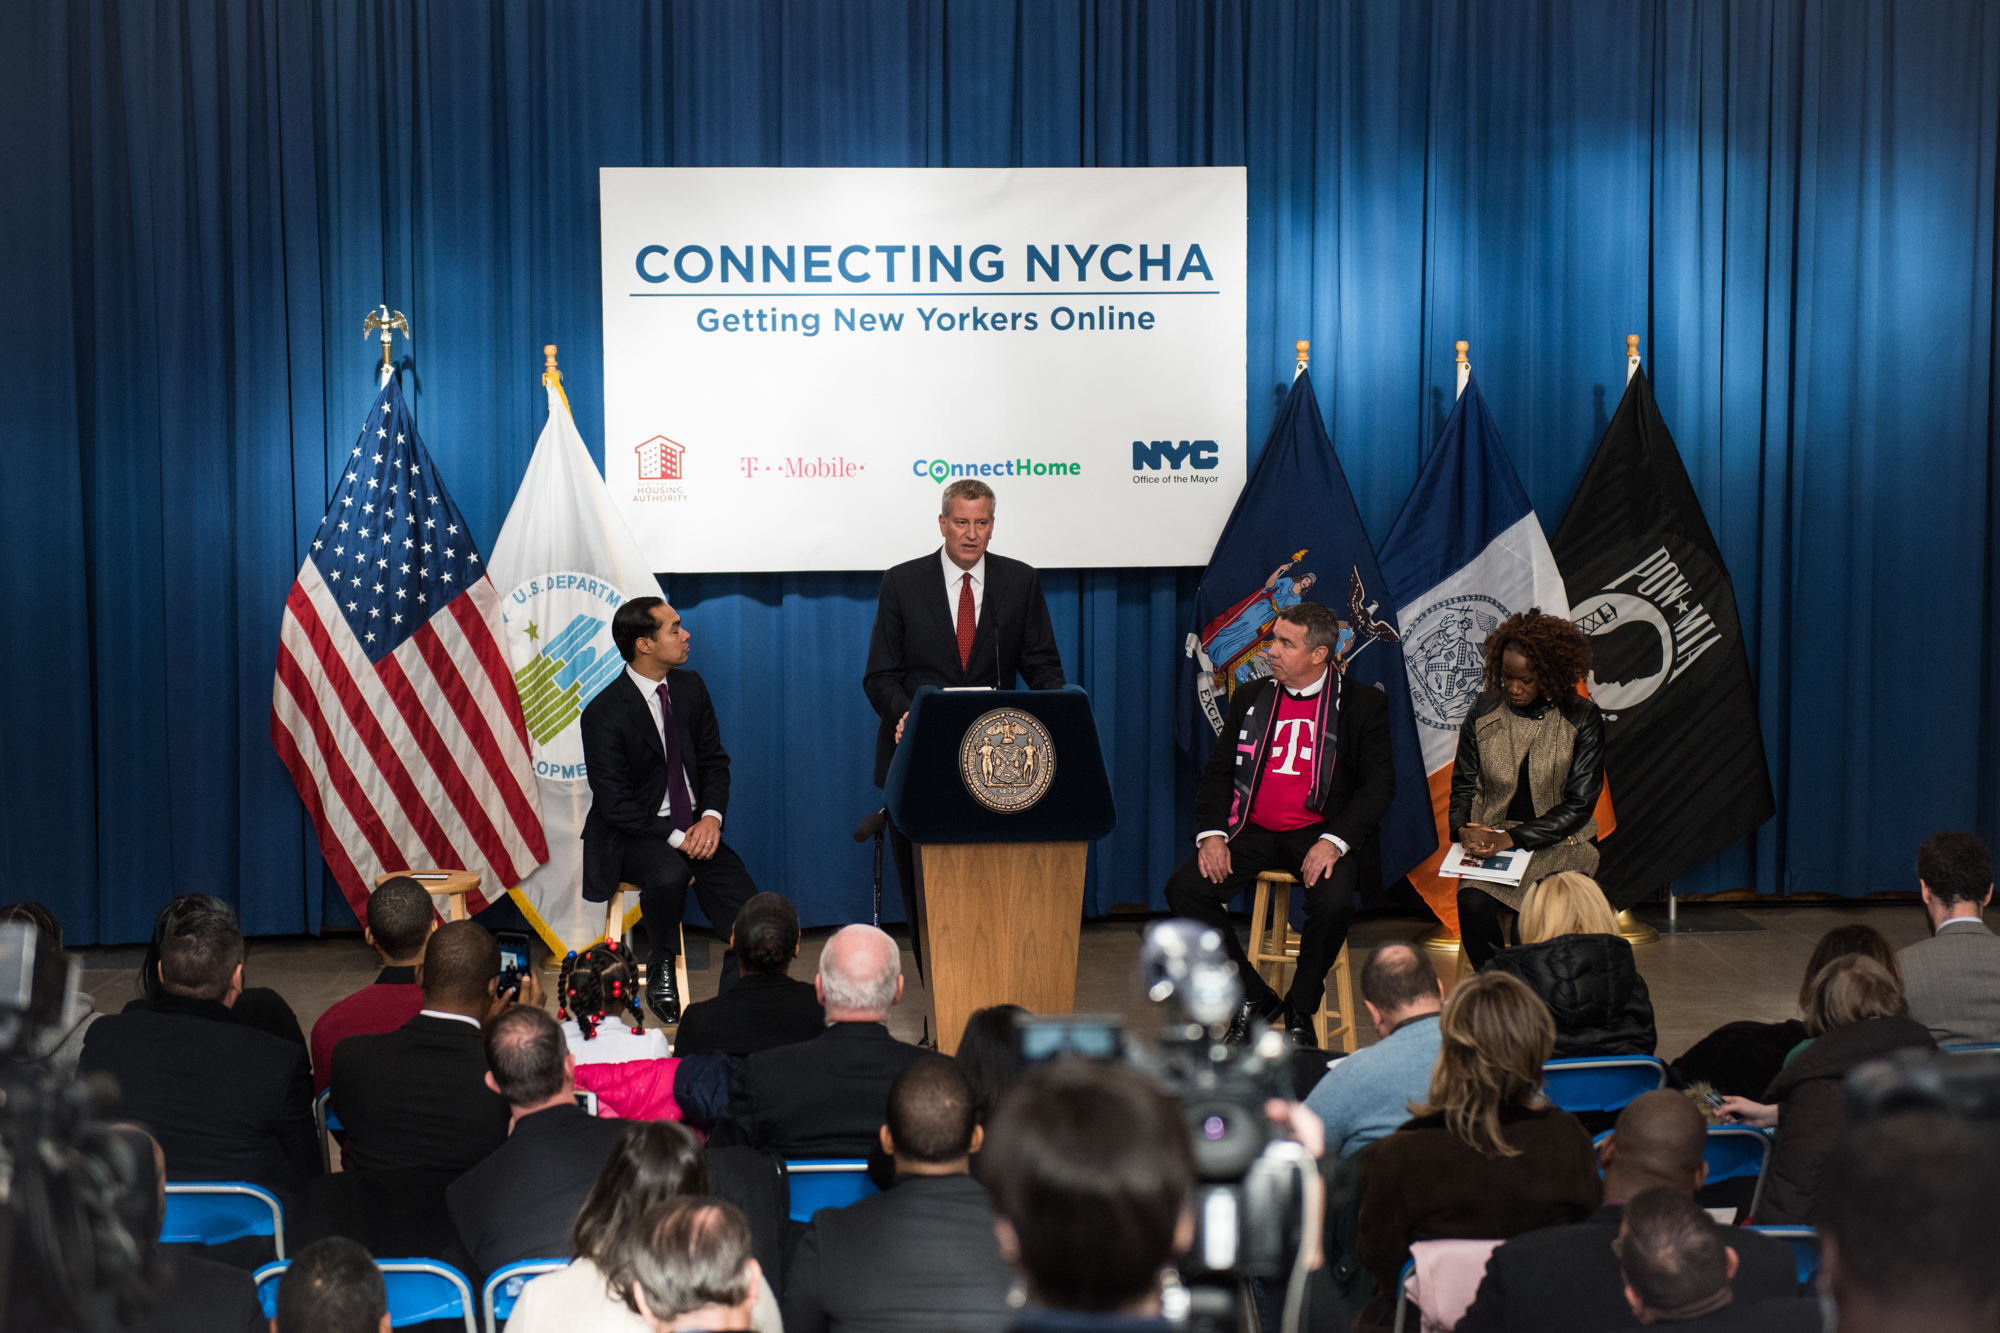 Mayor Bill de Blasio announced in 2016 increased internet access for Bronx NYCHA residents.